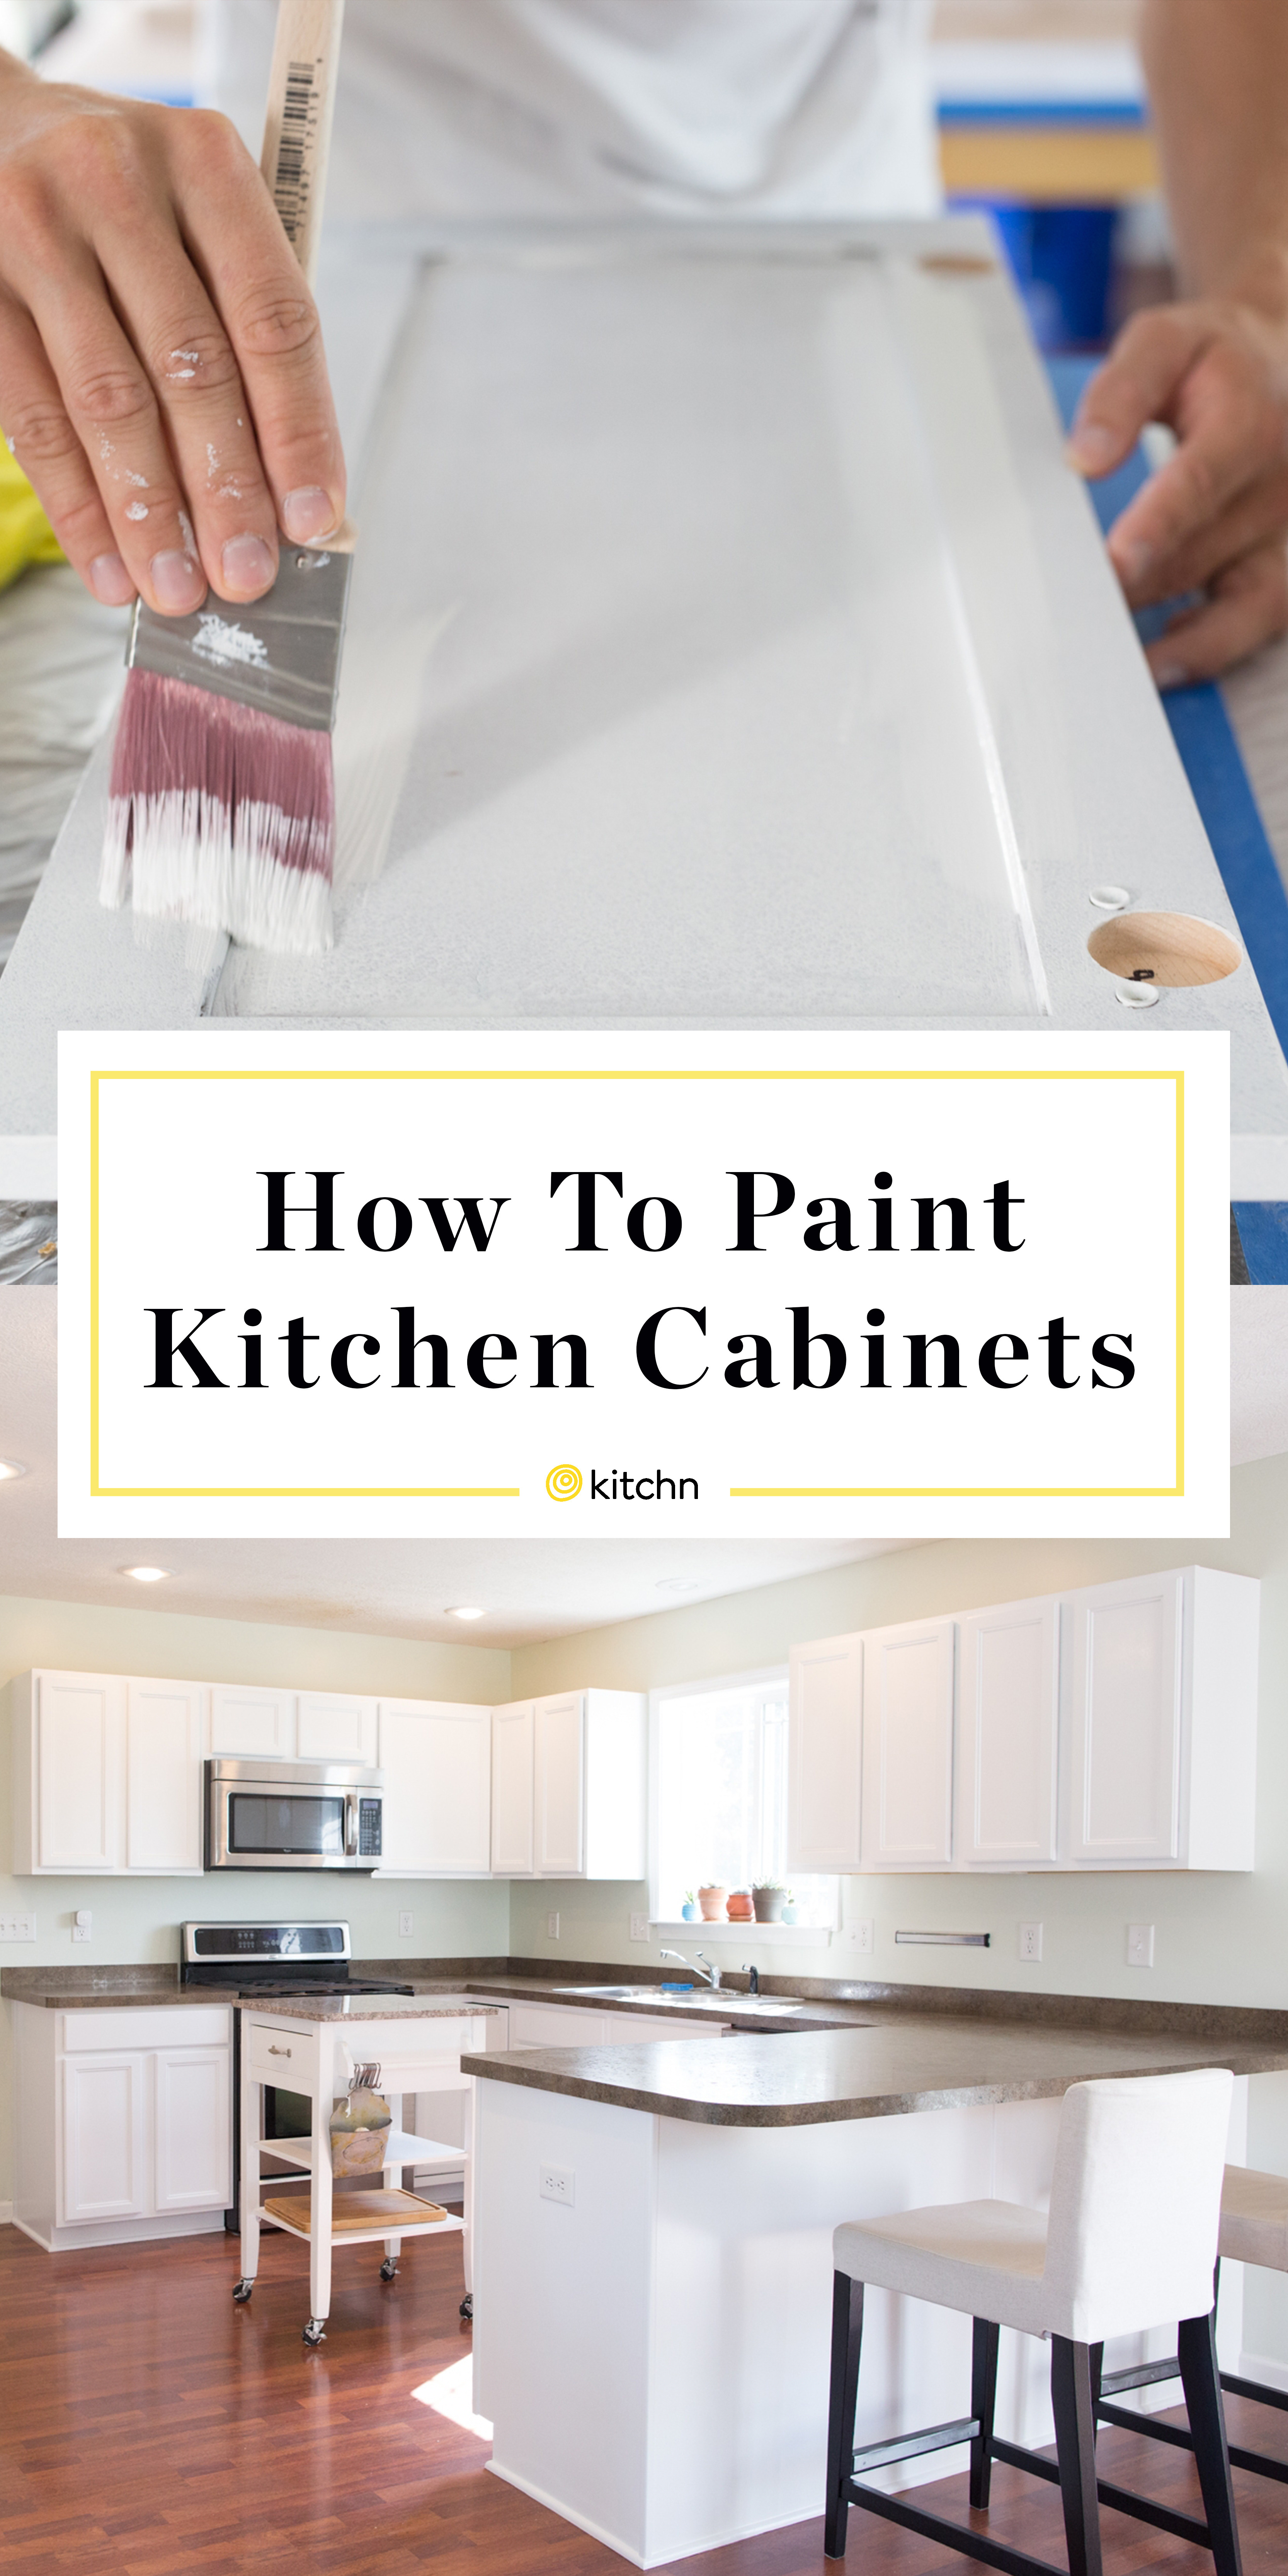 Replacement Kitchen Cabinet Doors White Unique How to Paint Wood Kitchen Cabinets with White Paint